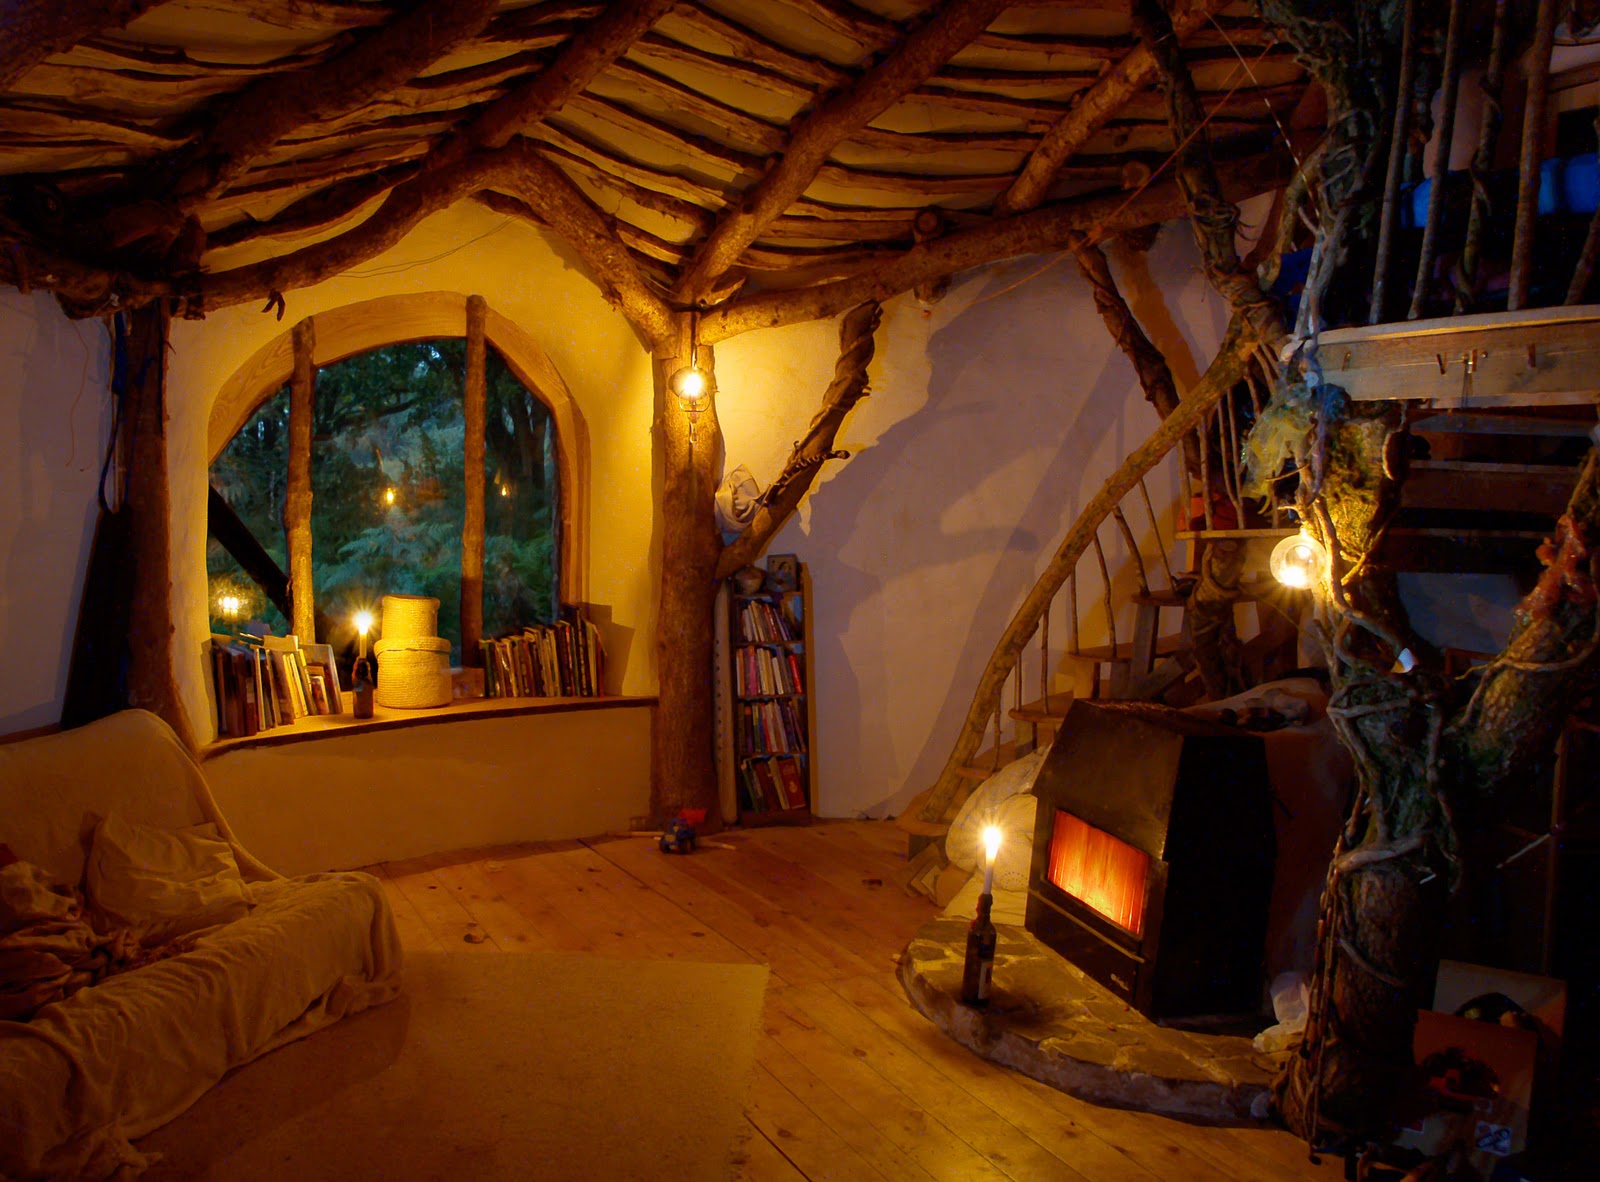 Missouri House Of Representatives Bans Hobbit Holes